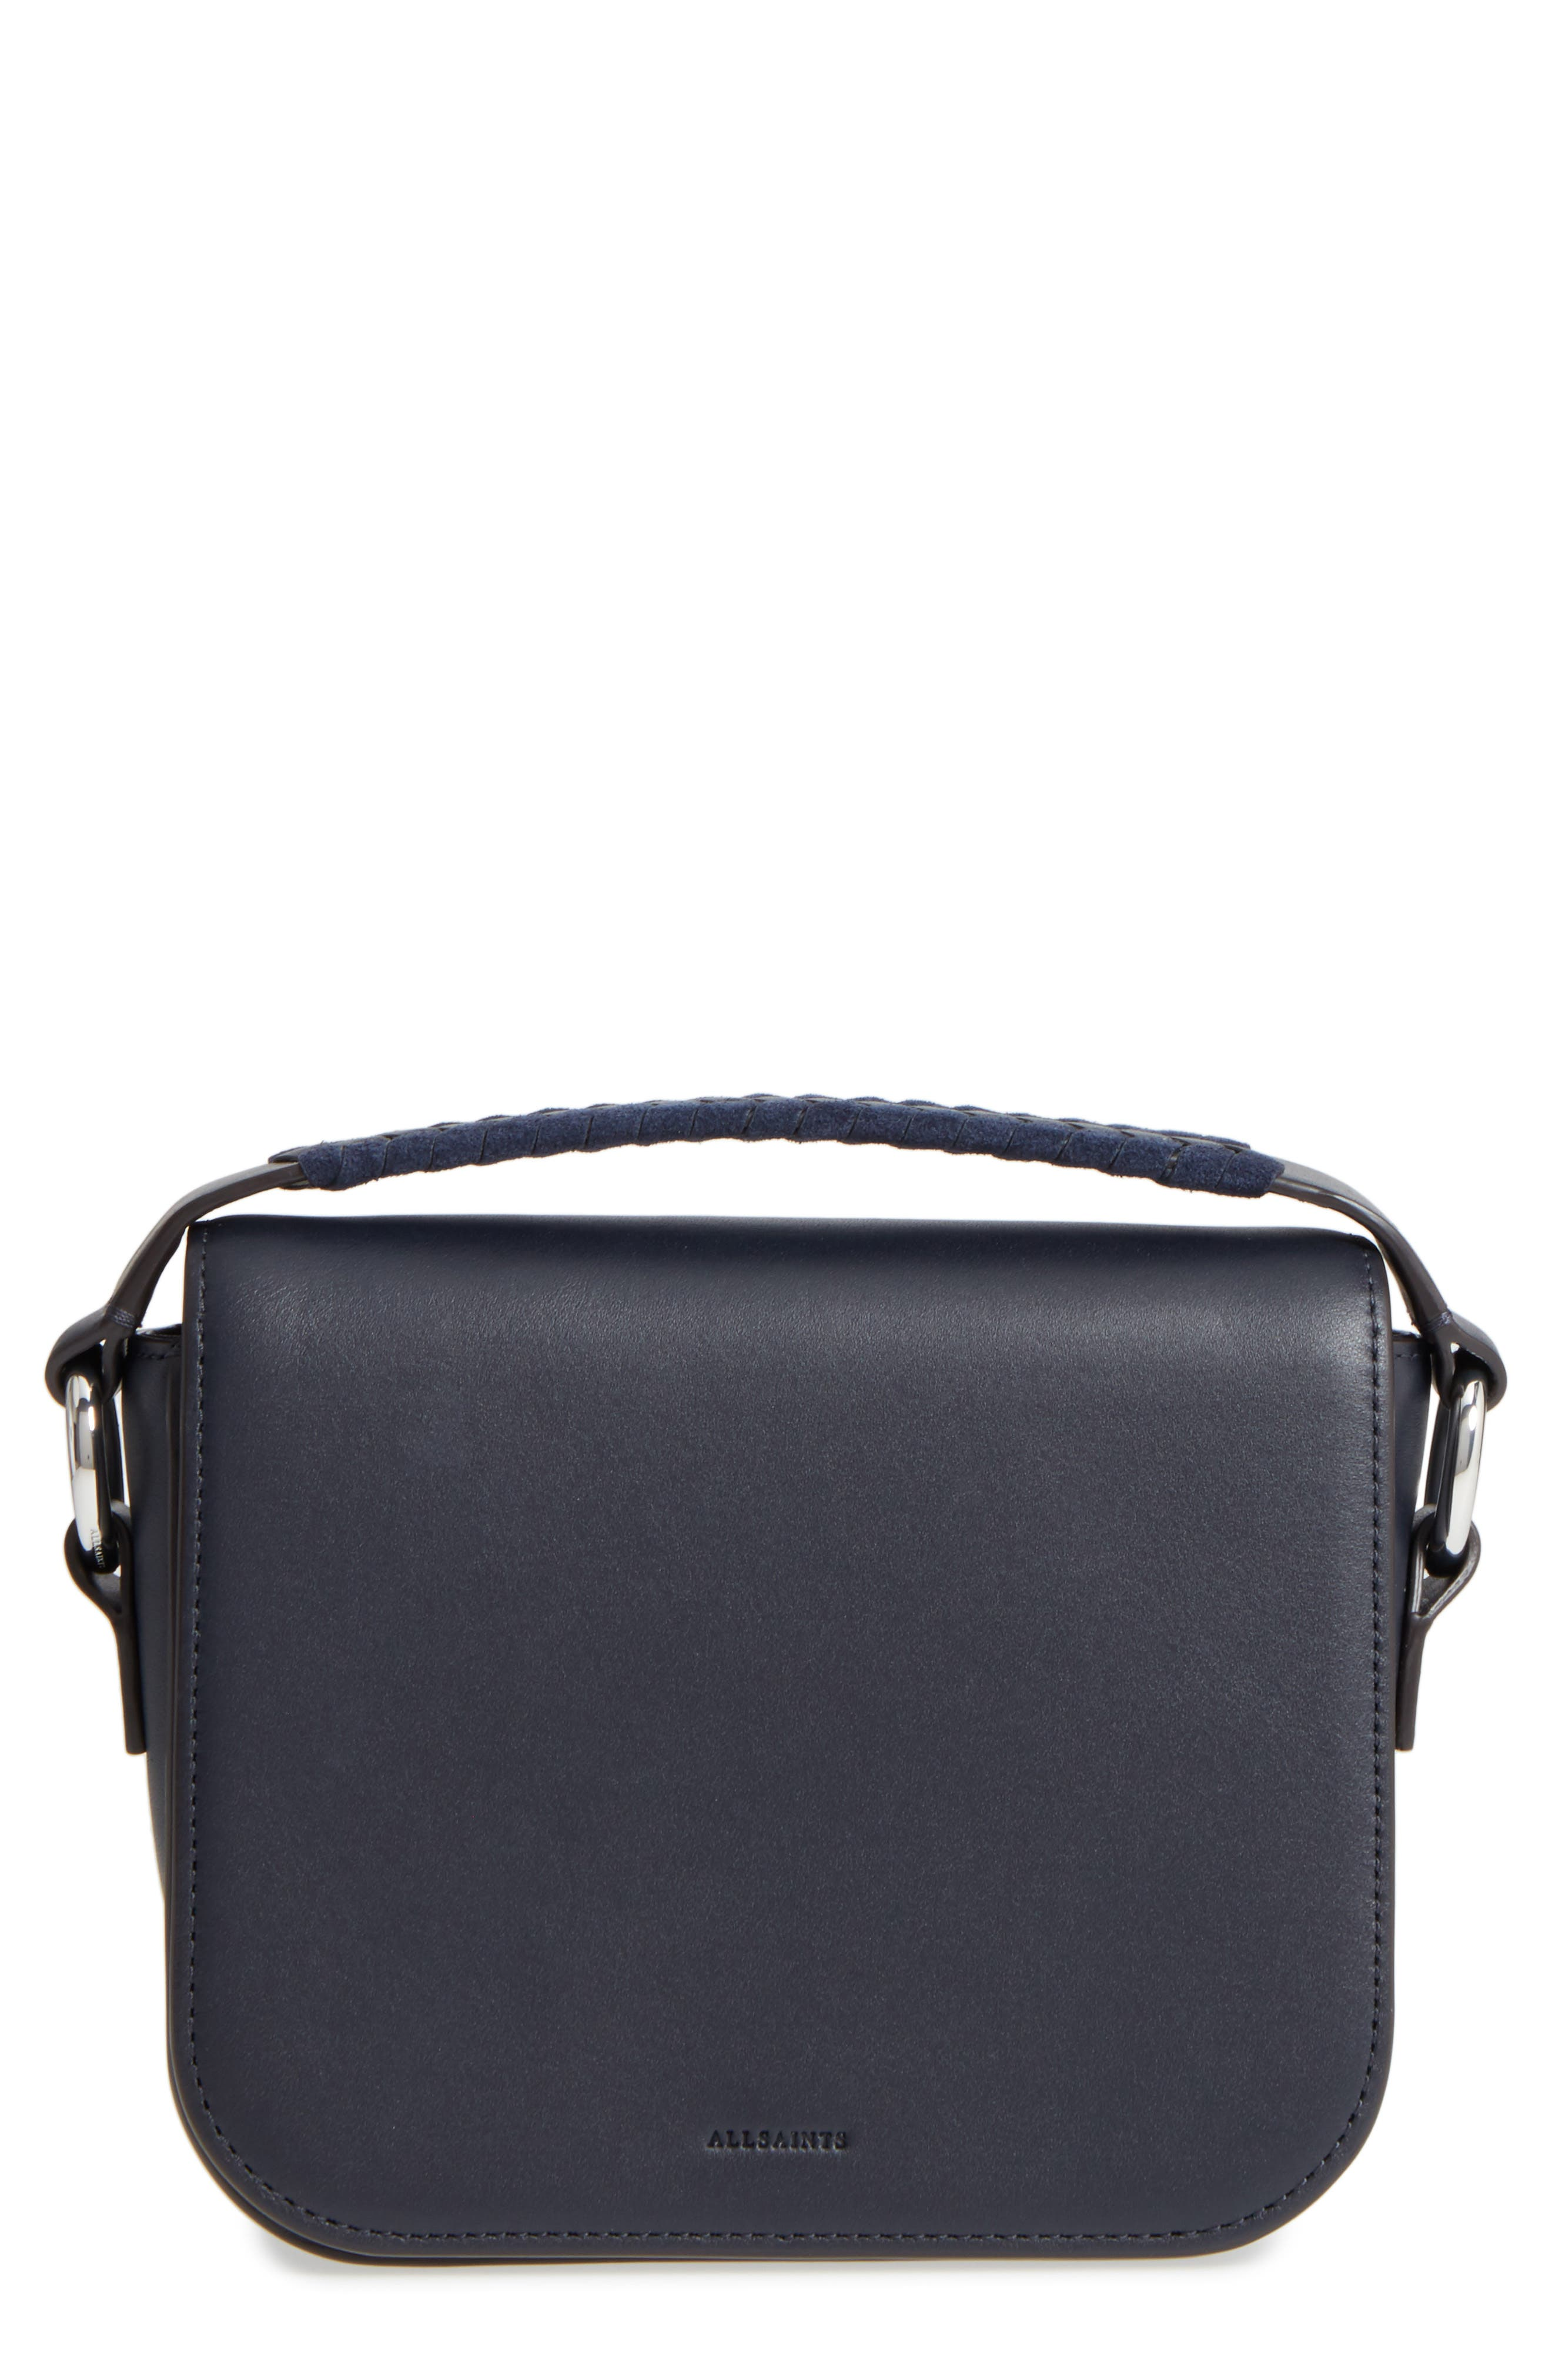 Alternate Image 1 Selected - ALLSAINTS Ray Leather Clutch